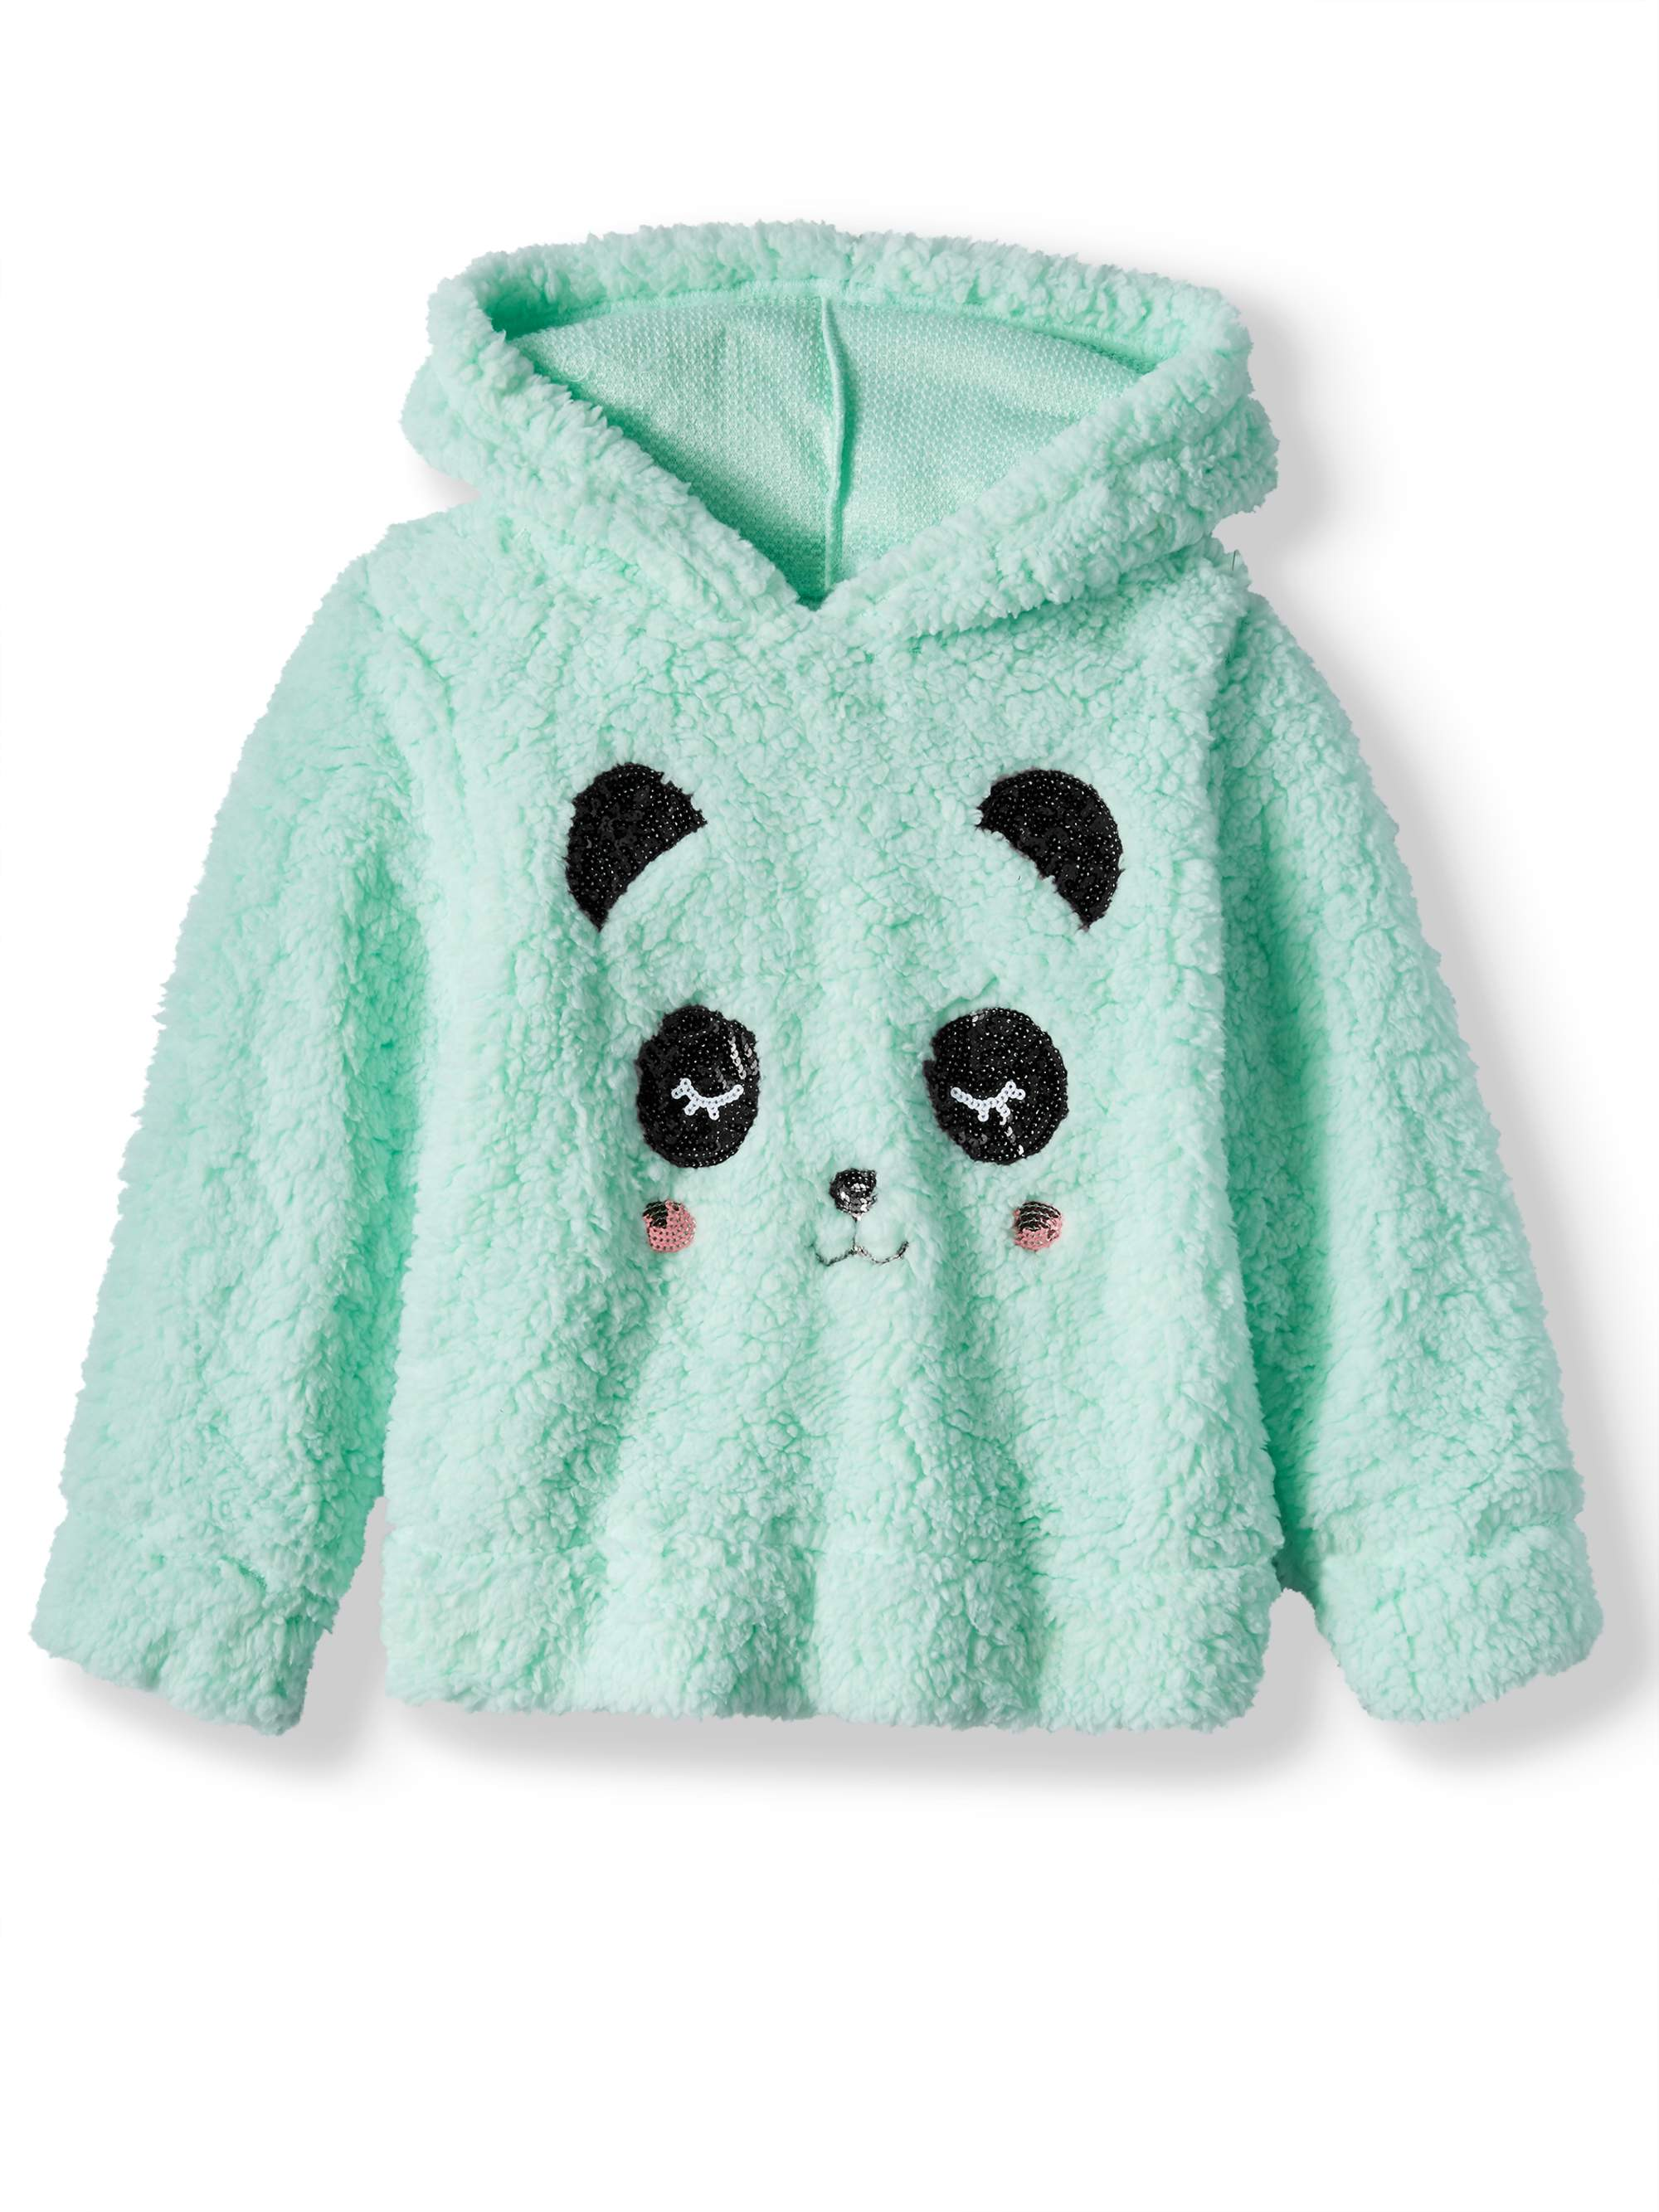 Miss Chievous Sequin Critter Plush Sherpa Hoodie (Little Girls & Big Girls)